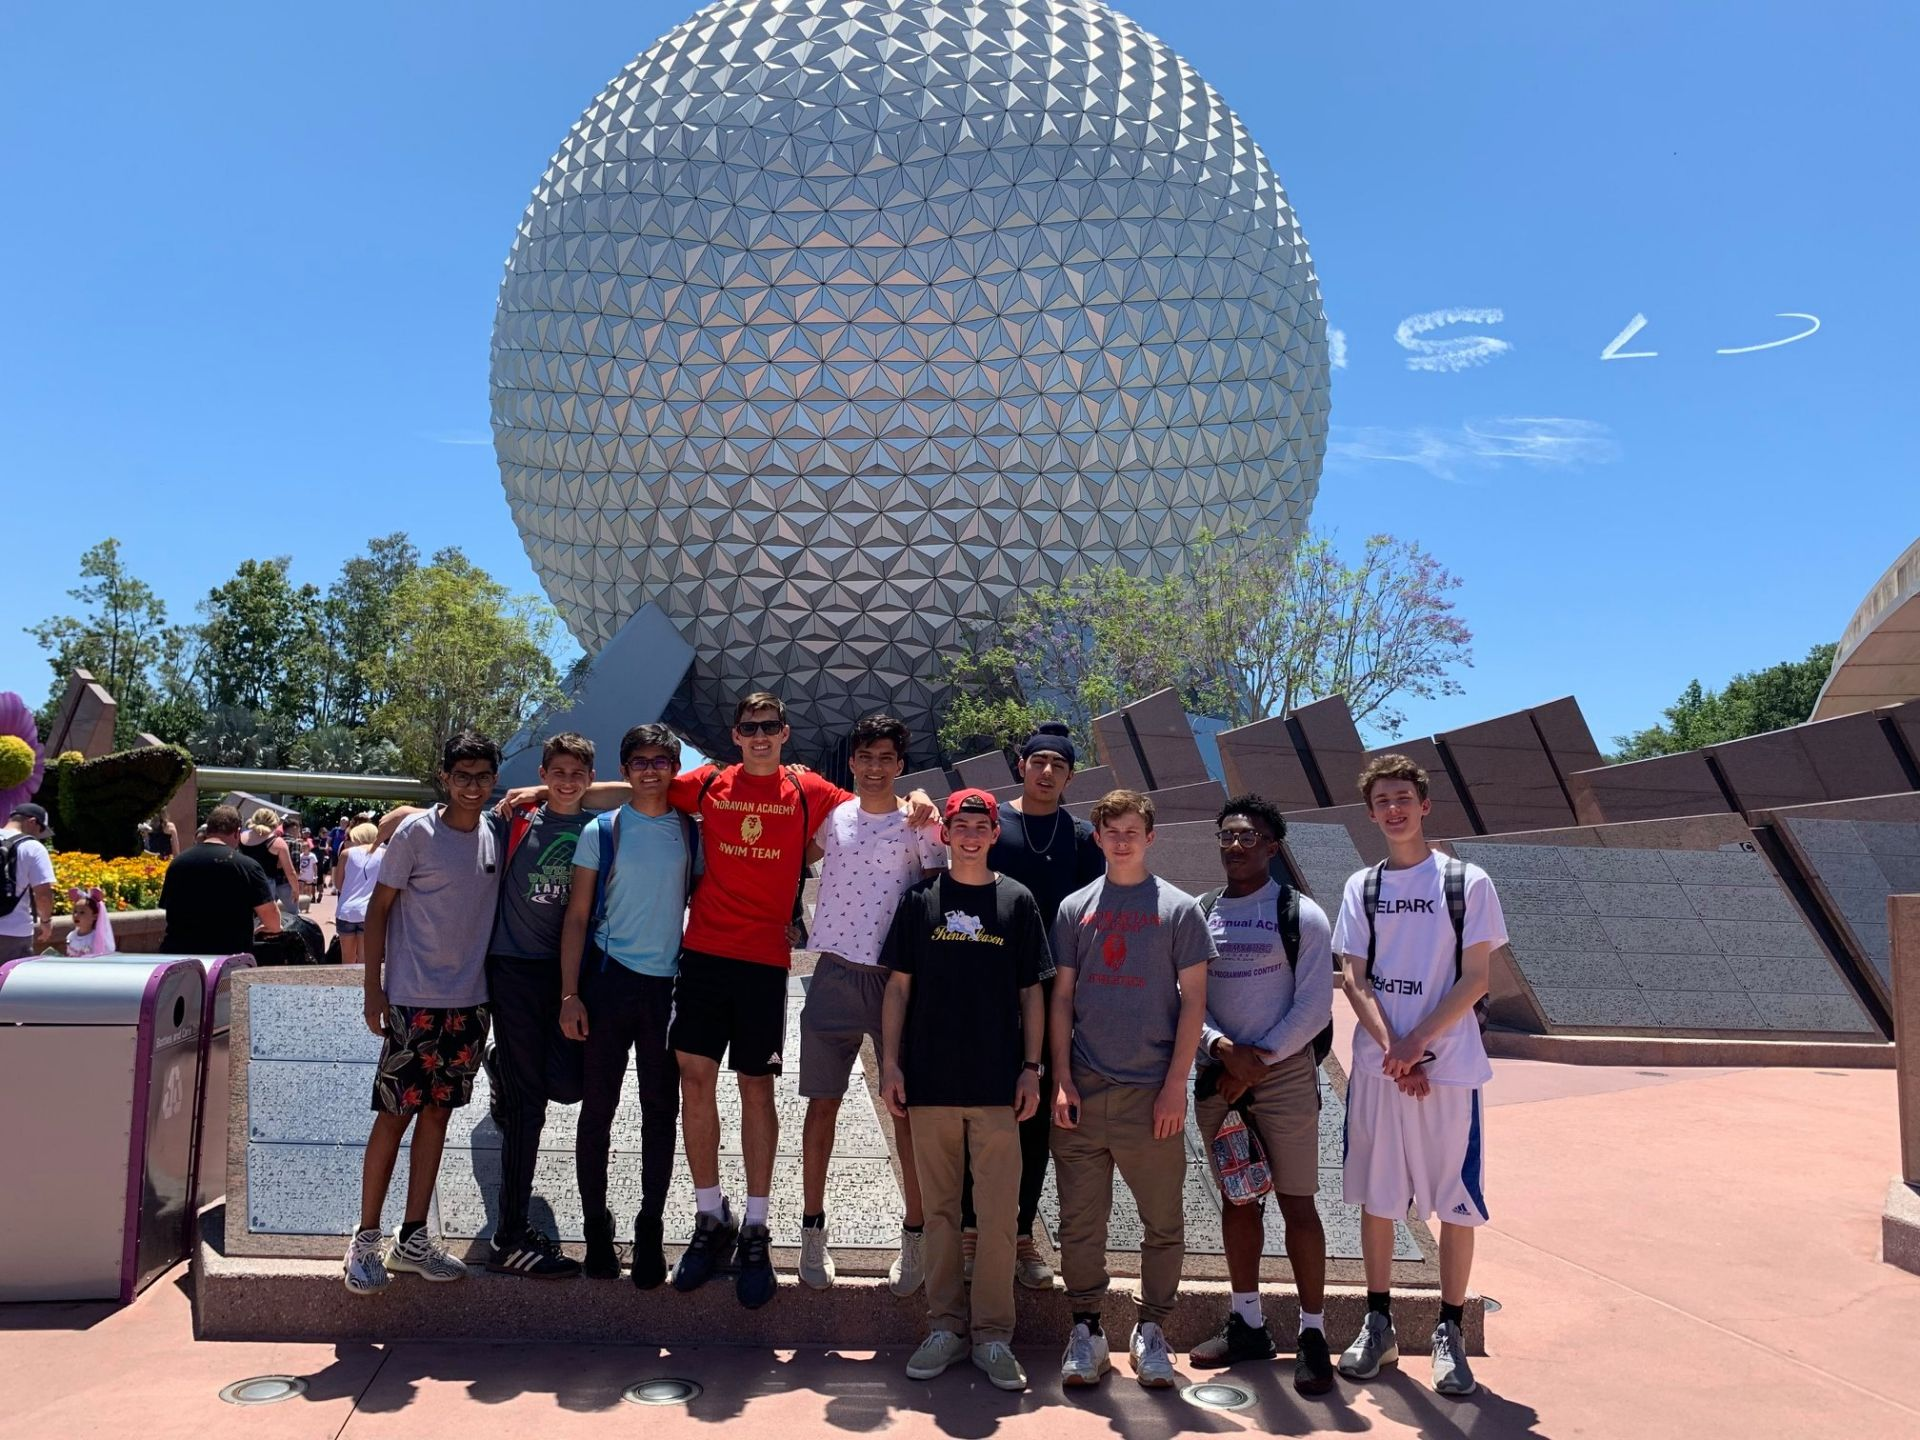 Greetings from members of our DECA Team at Disney World in Orlando, FL!